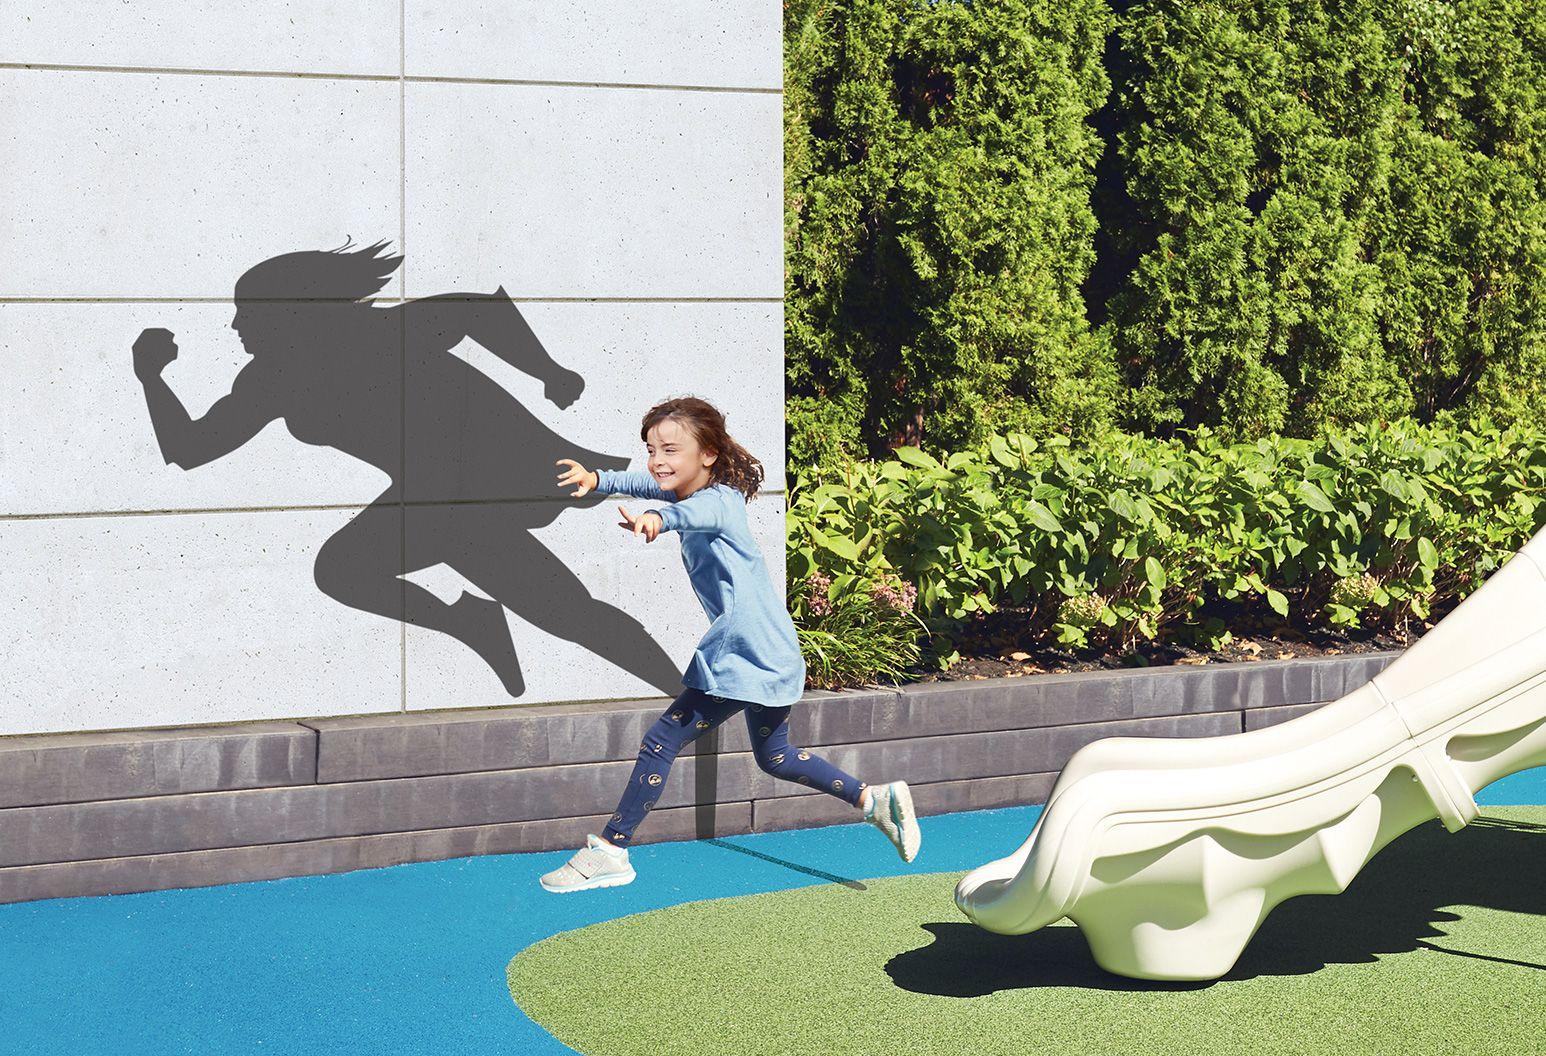 A little girl jumps in a colorful playground. There's a shadow of a superhero behind her.